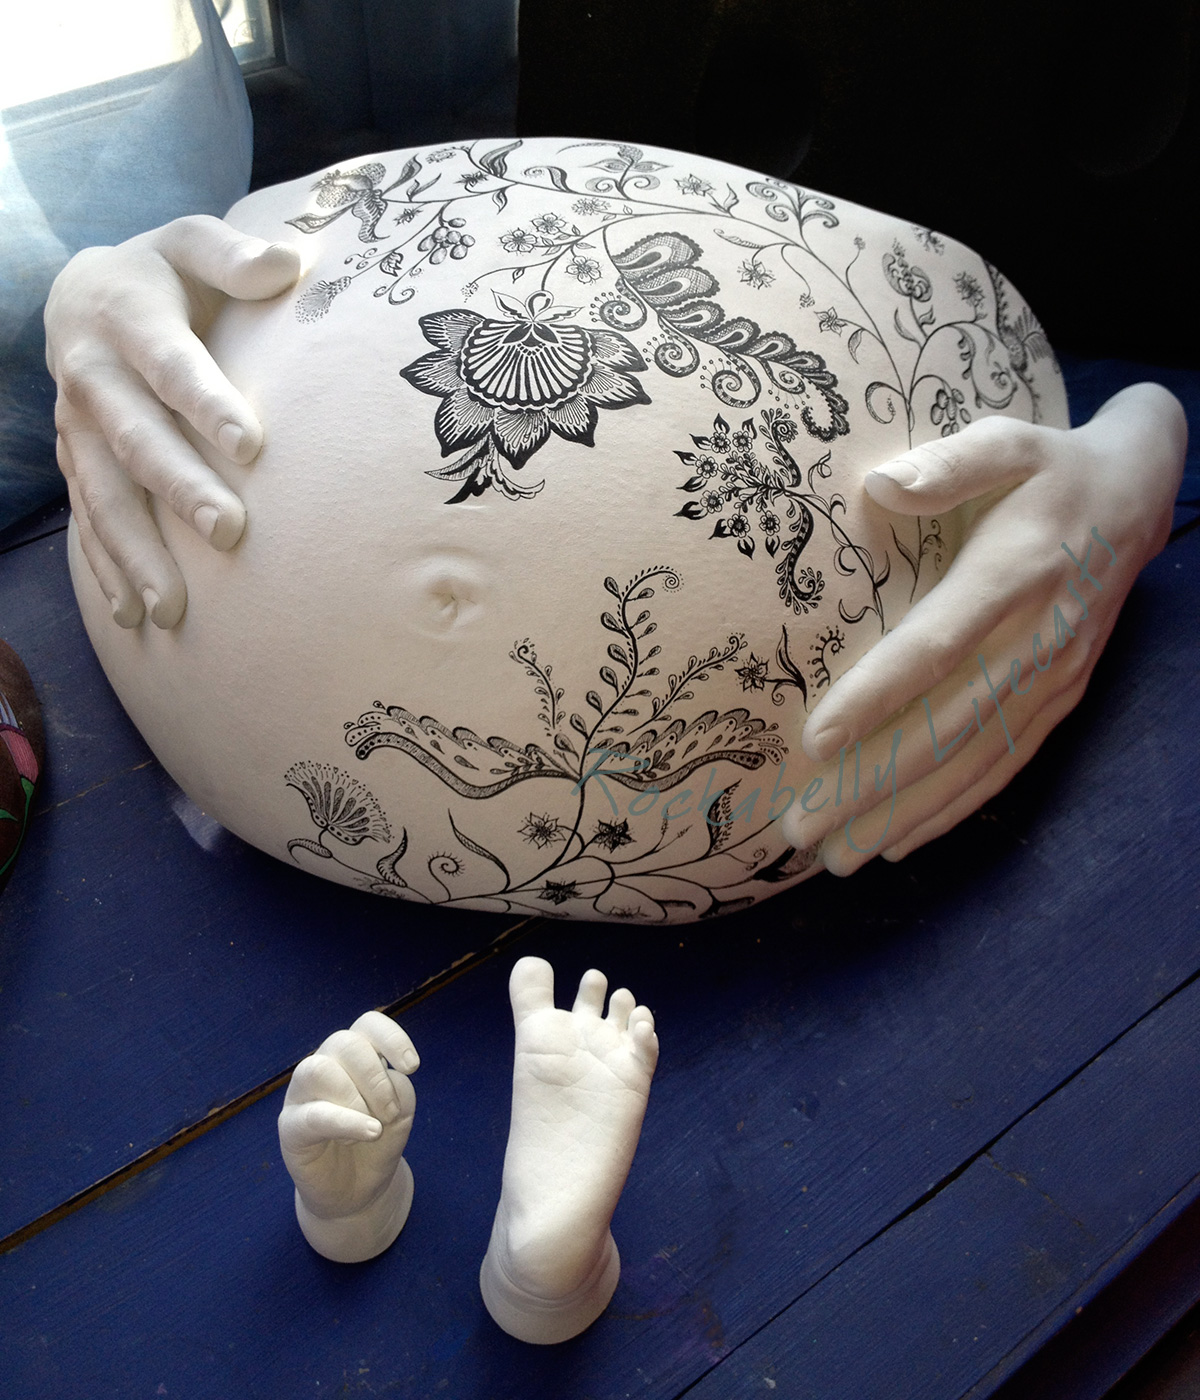 Rockabelly_painted_henna_pregnant_belly_cast.jpg